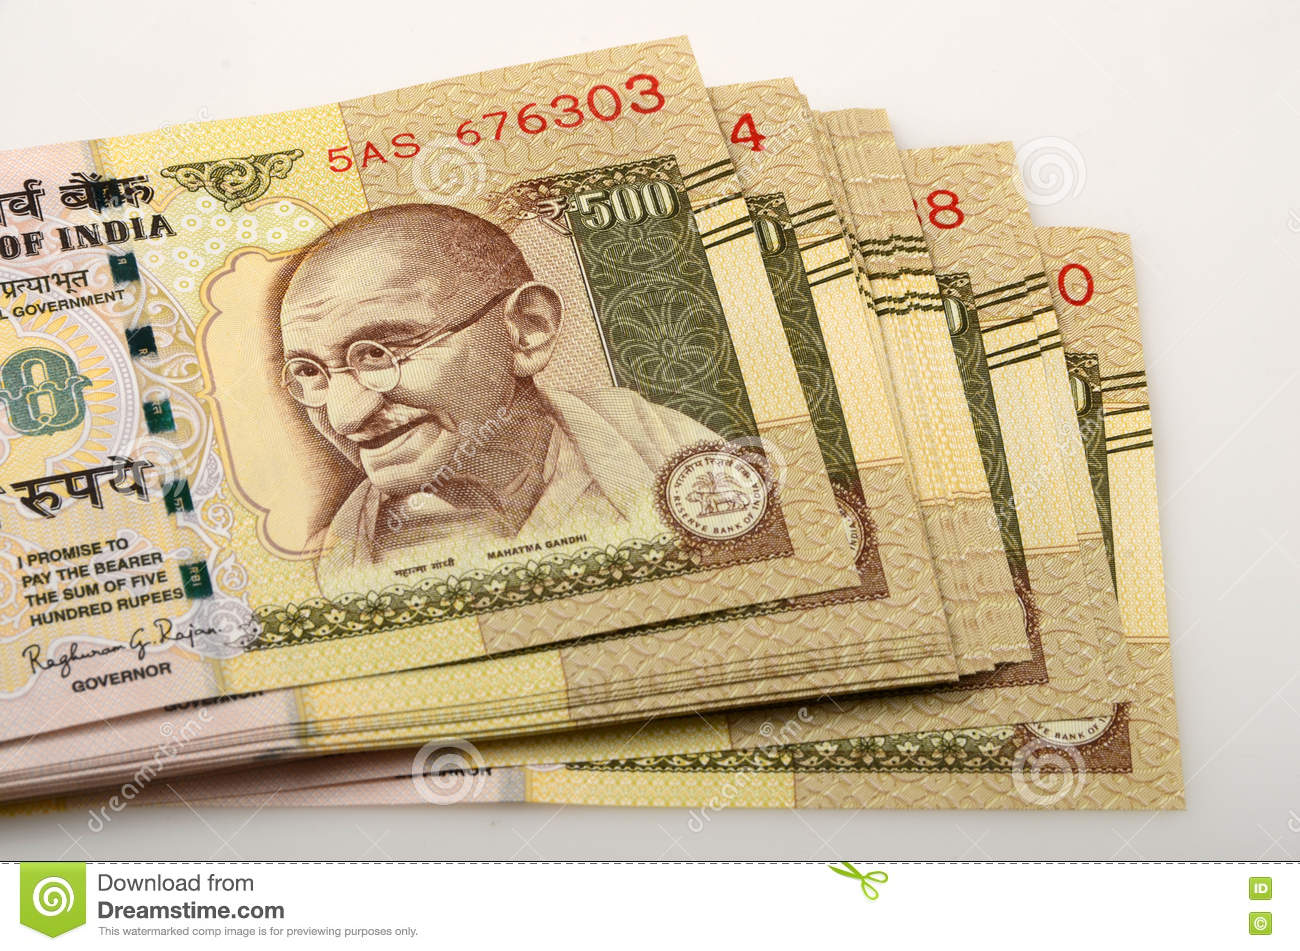 indian currency The us treasury's semi-annual foreign exchange policy report is typically watched for statements on the chinese currency this year's report, however, is more notable for the addition of the indian currency to the'watch list' of nations that may be intervening excessively in their foreign exchange markets and distorting trade flows.